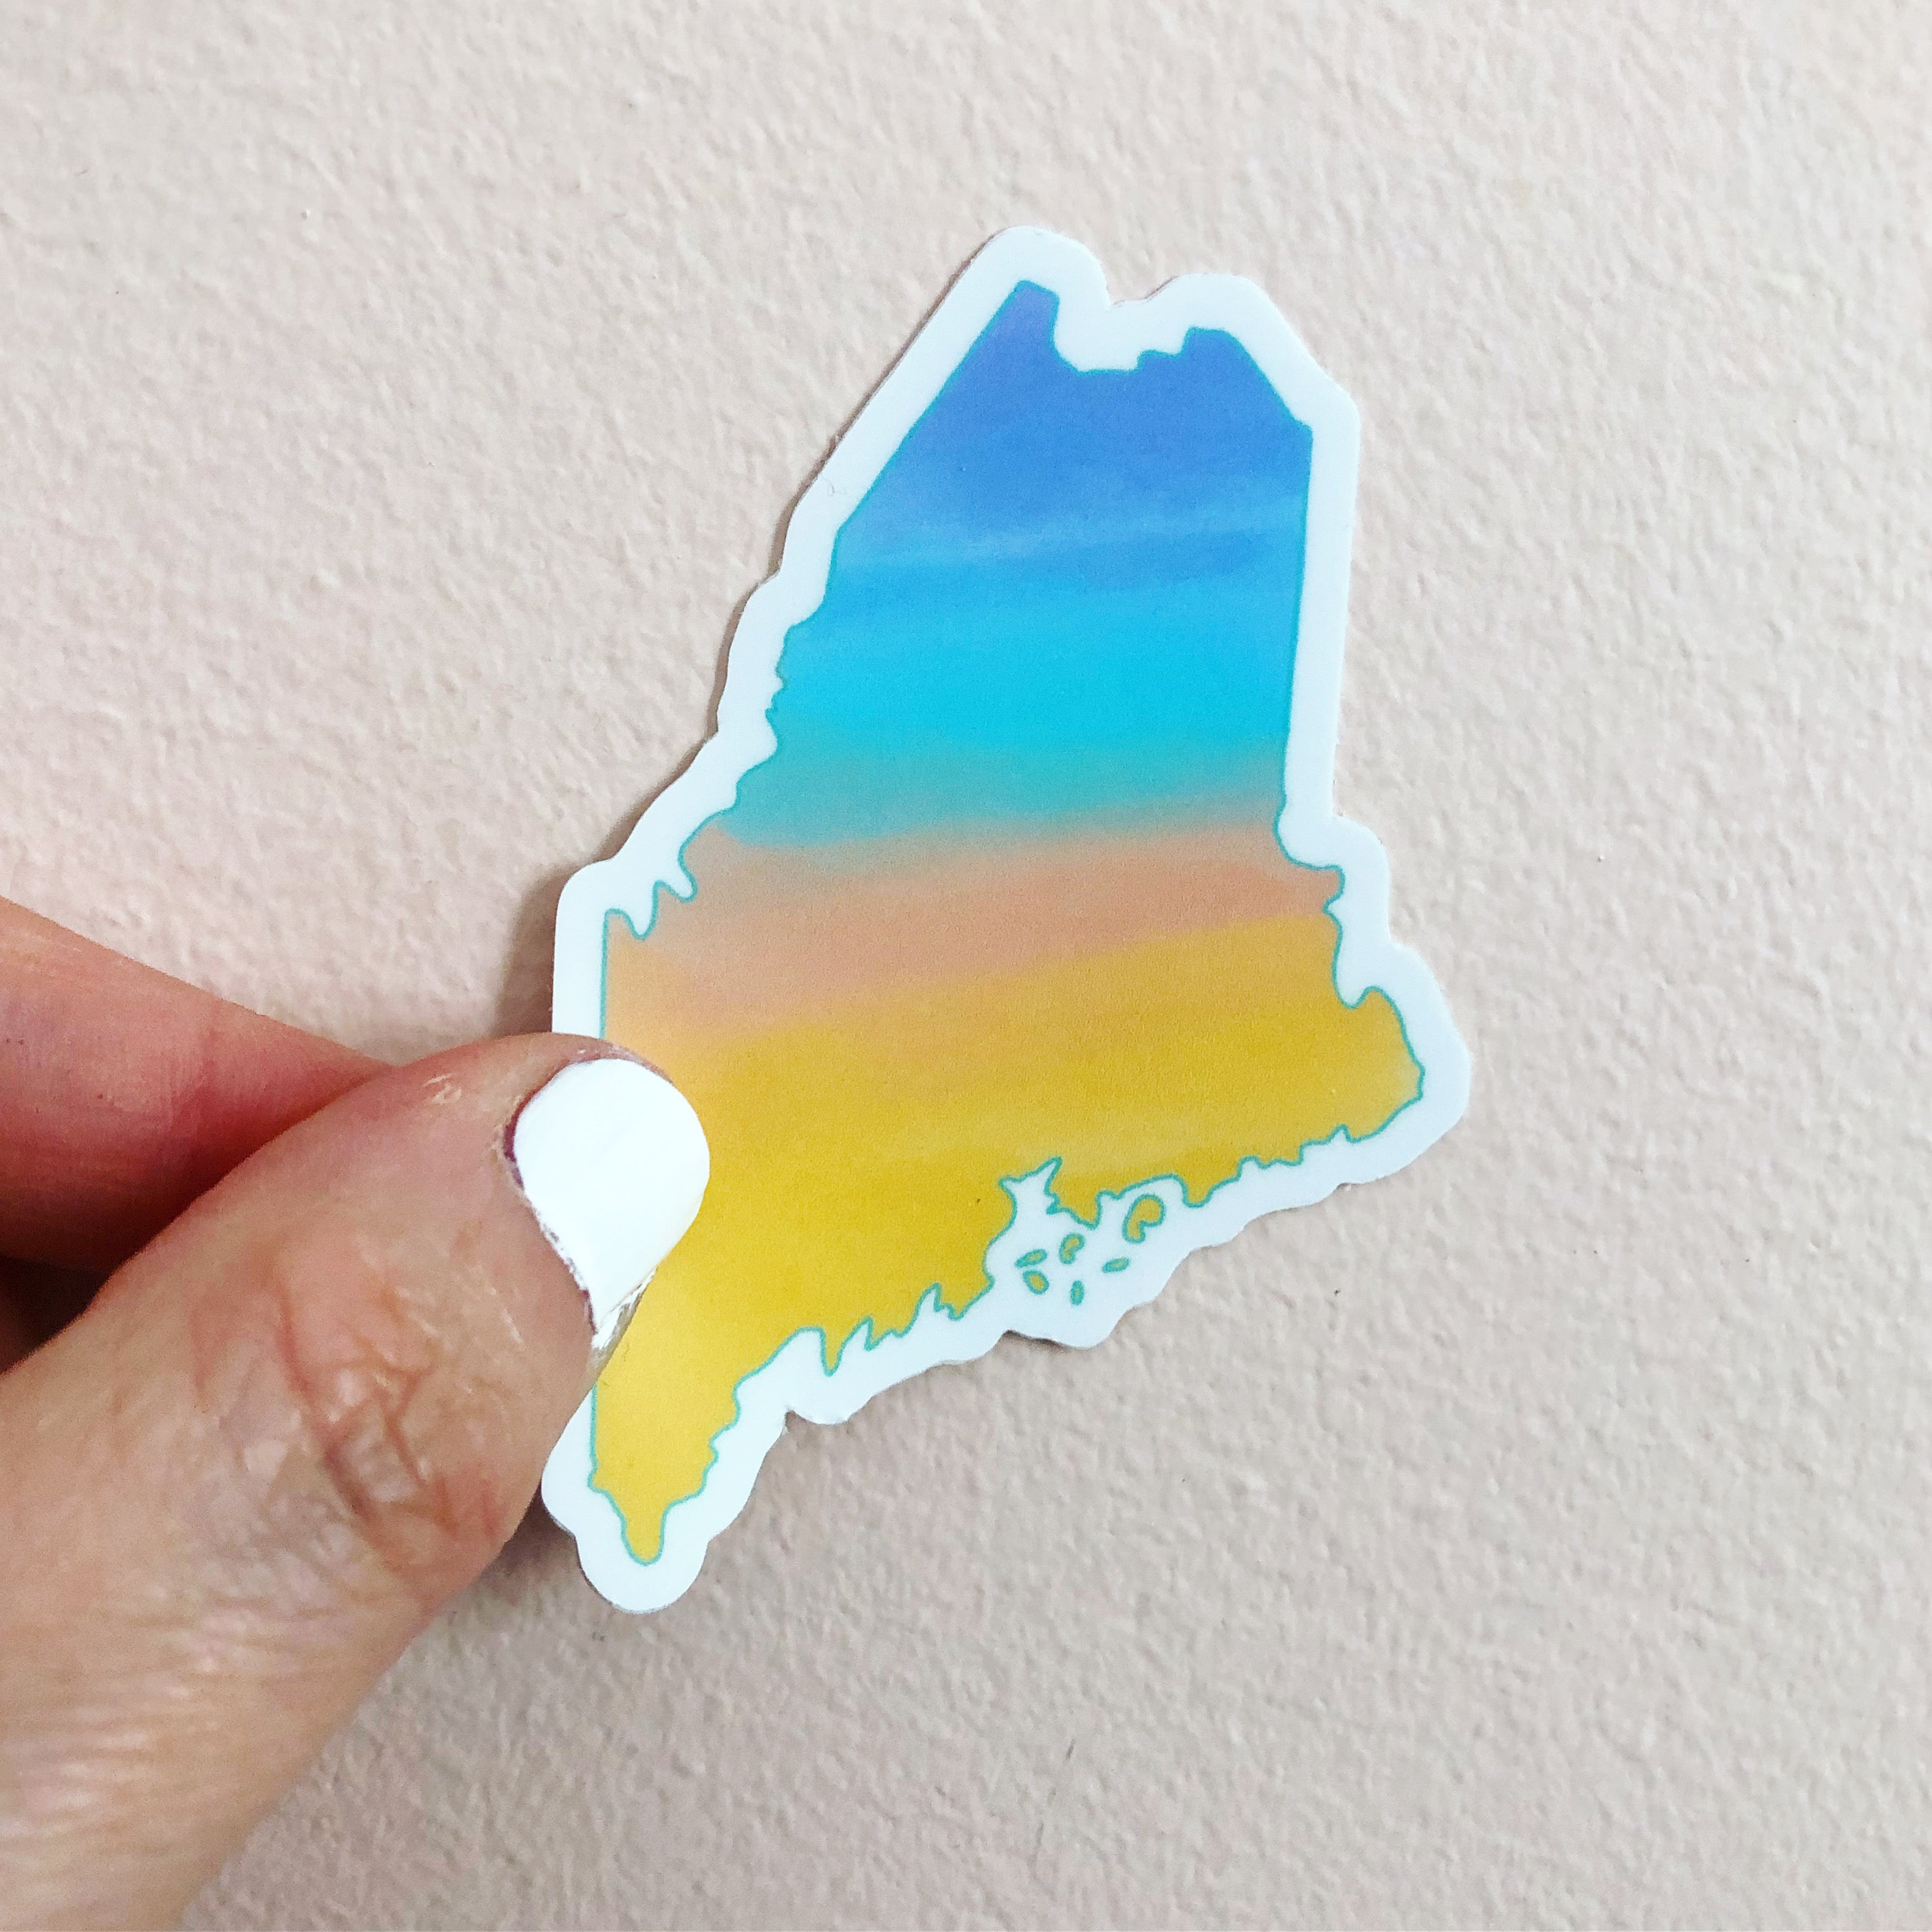 Maine sunset sticker, state of maine sticker, by Abigail Gray Swartz